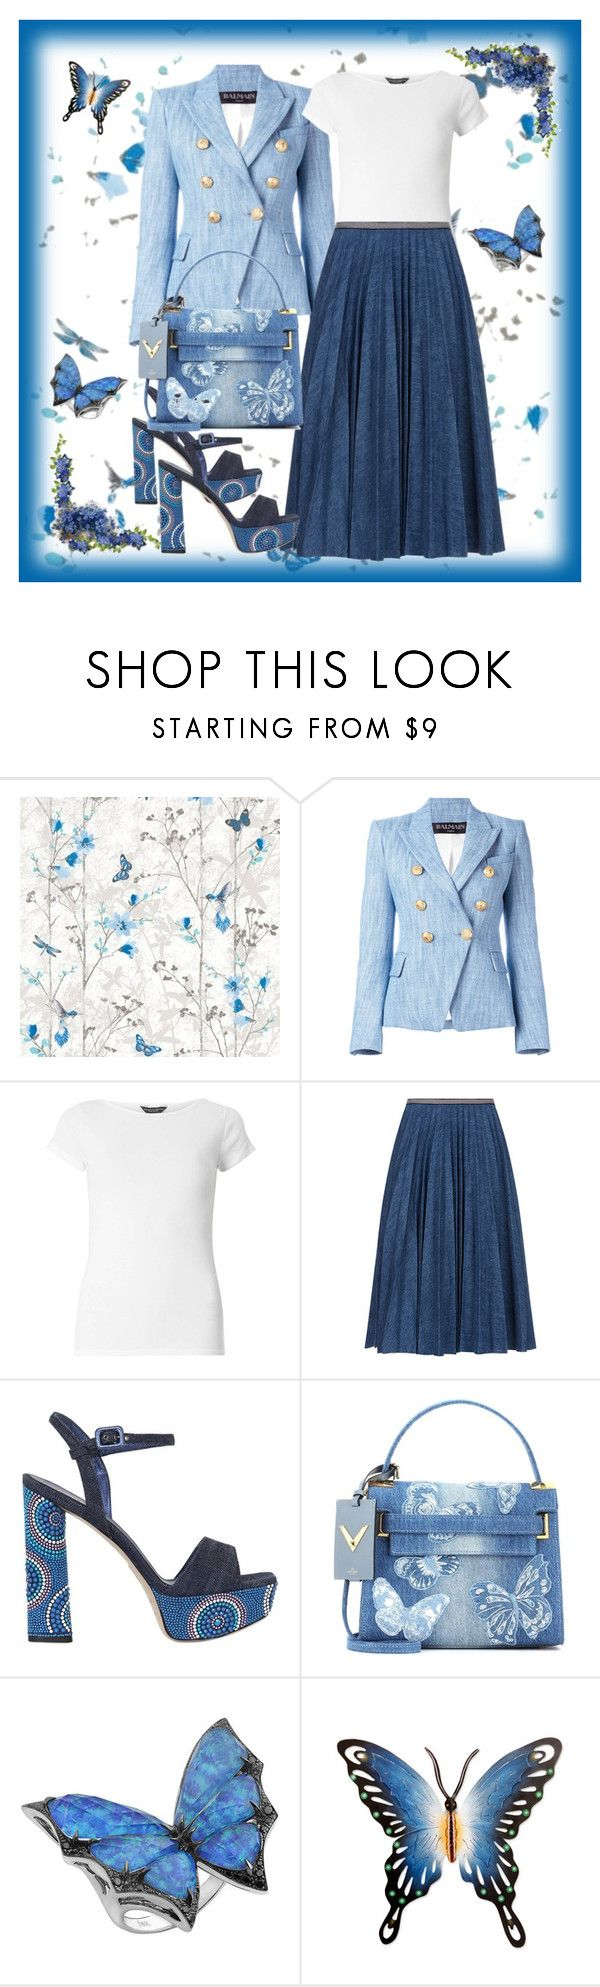 """""""dream in blue"""" by francymayoli ❤ liked on Polyvore featuring Balmain, Dorothy Perkins, Leur Logette, Le Silla, Valentino, Stephen Webster and NOVICA"""